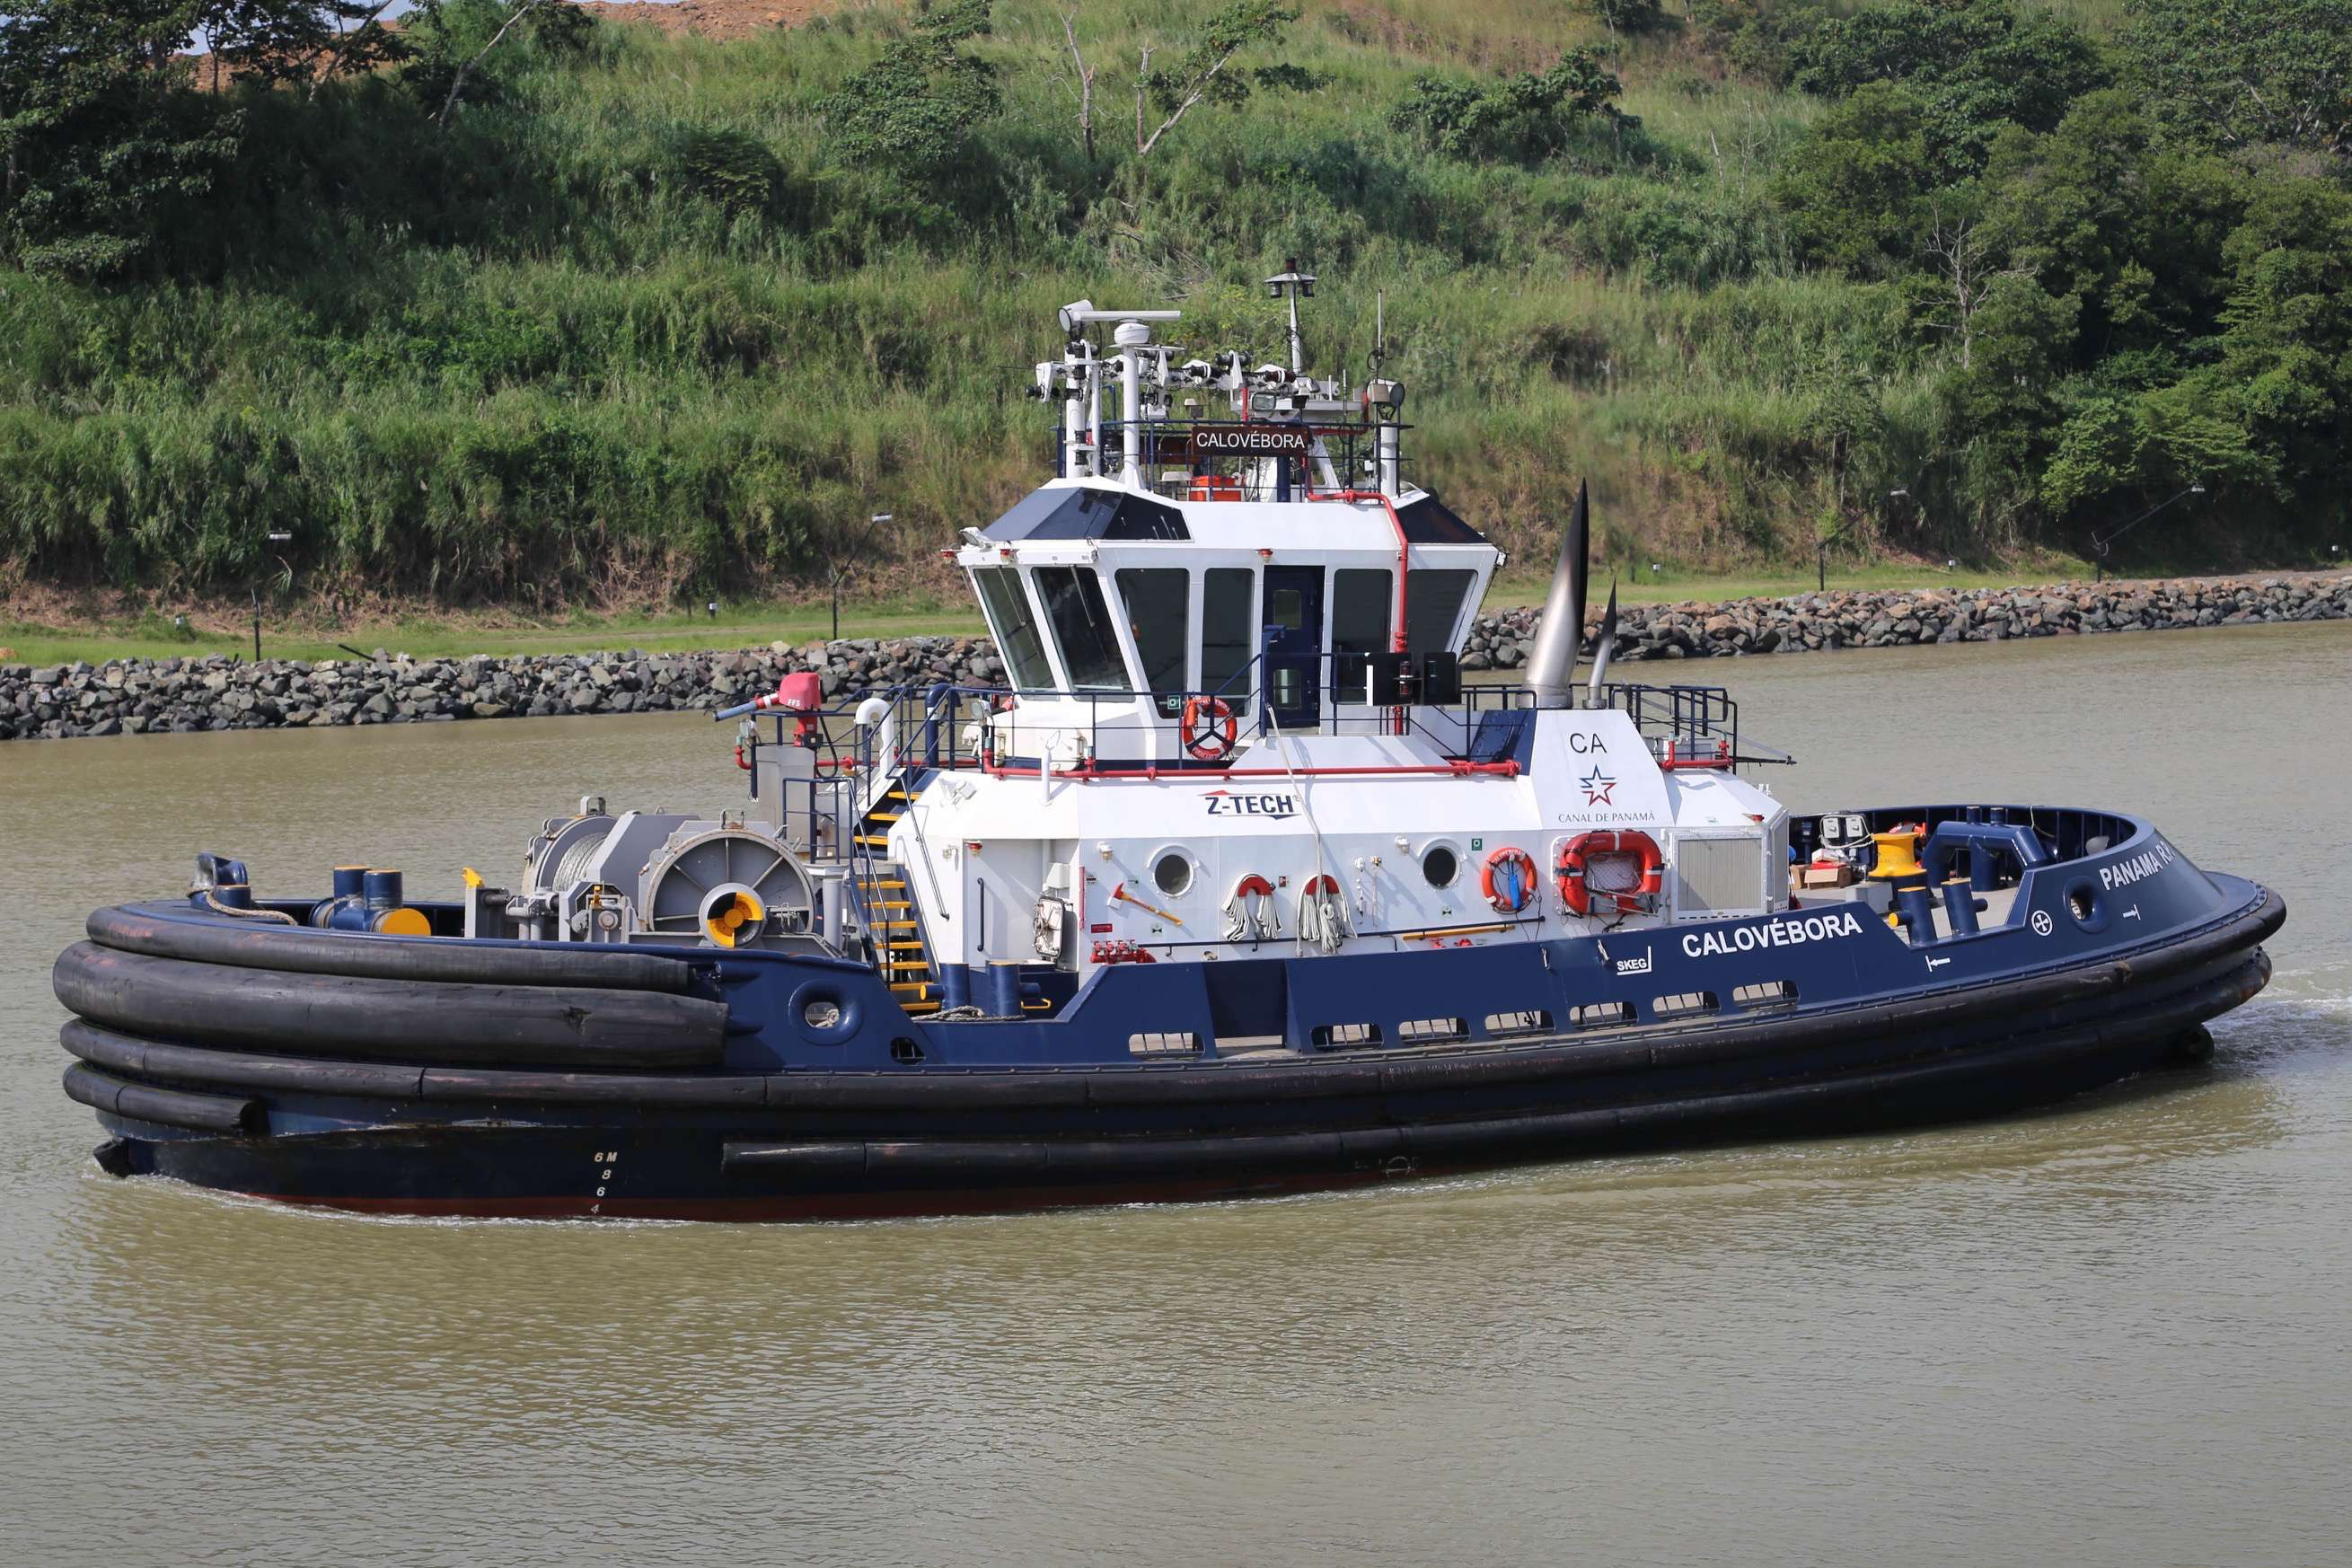 Only experienced crews work on the tug boats because an accident could halt the passage of ships at the busy Panama Canal.